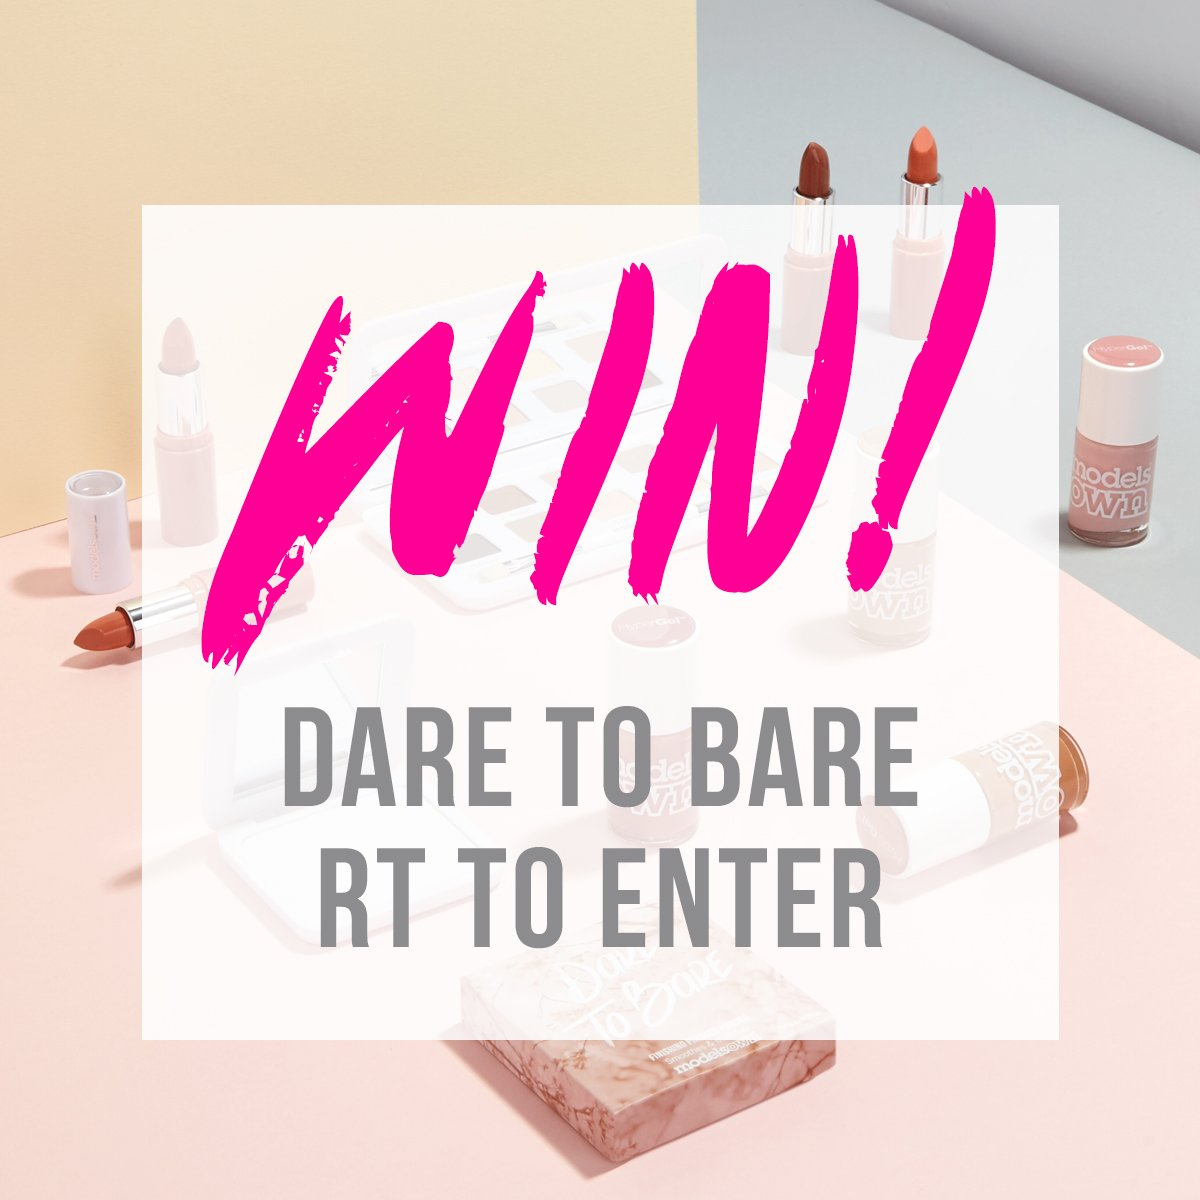 #WIN!! A set of our gorgeous nude Dare To Bare Collection! RT to enter *T&Cs apply (Closes 27/09/16 15:00 UK time) https://t.co/gLgJWwONE9